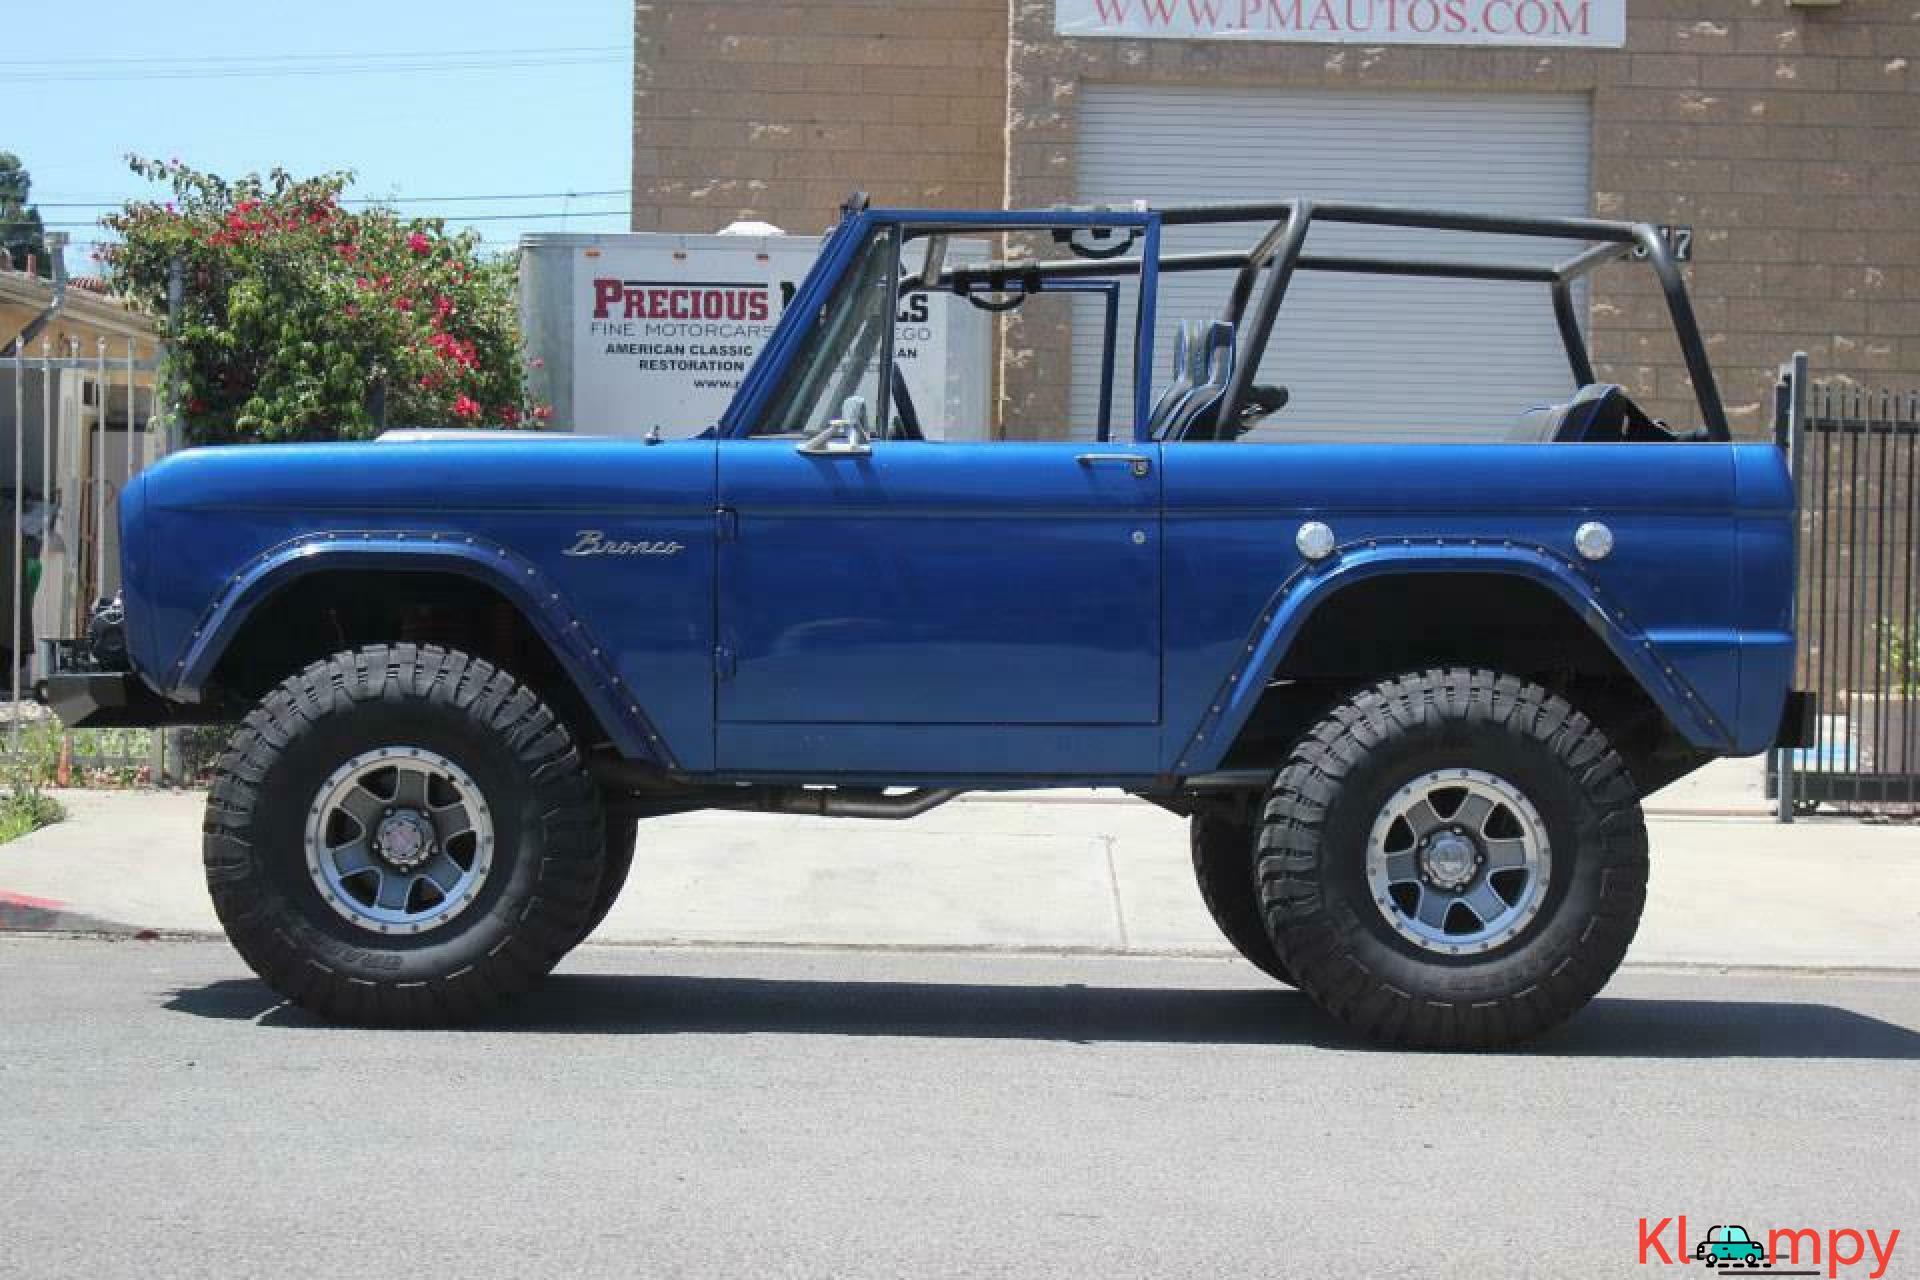 1975 Ford Bronco 5.0 Fuel Injected Power - Kloompy